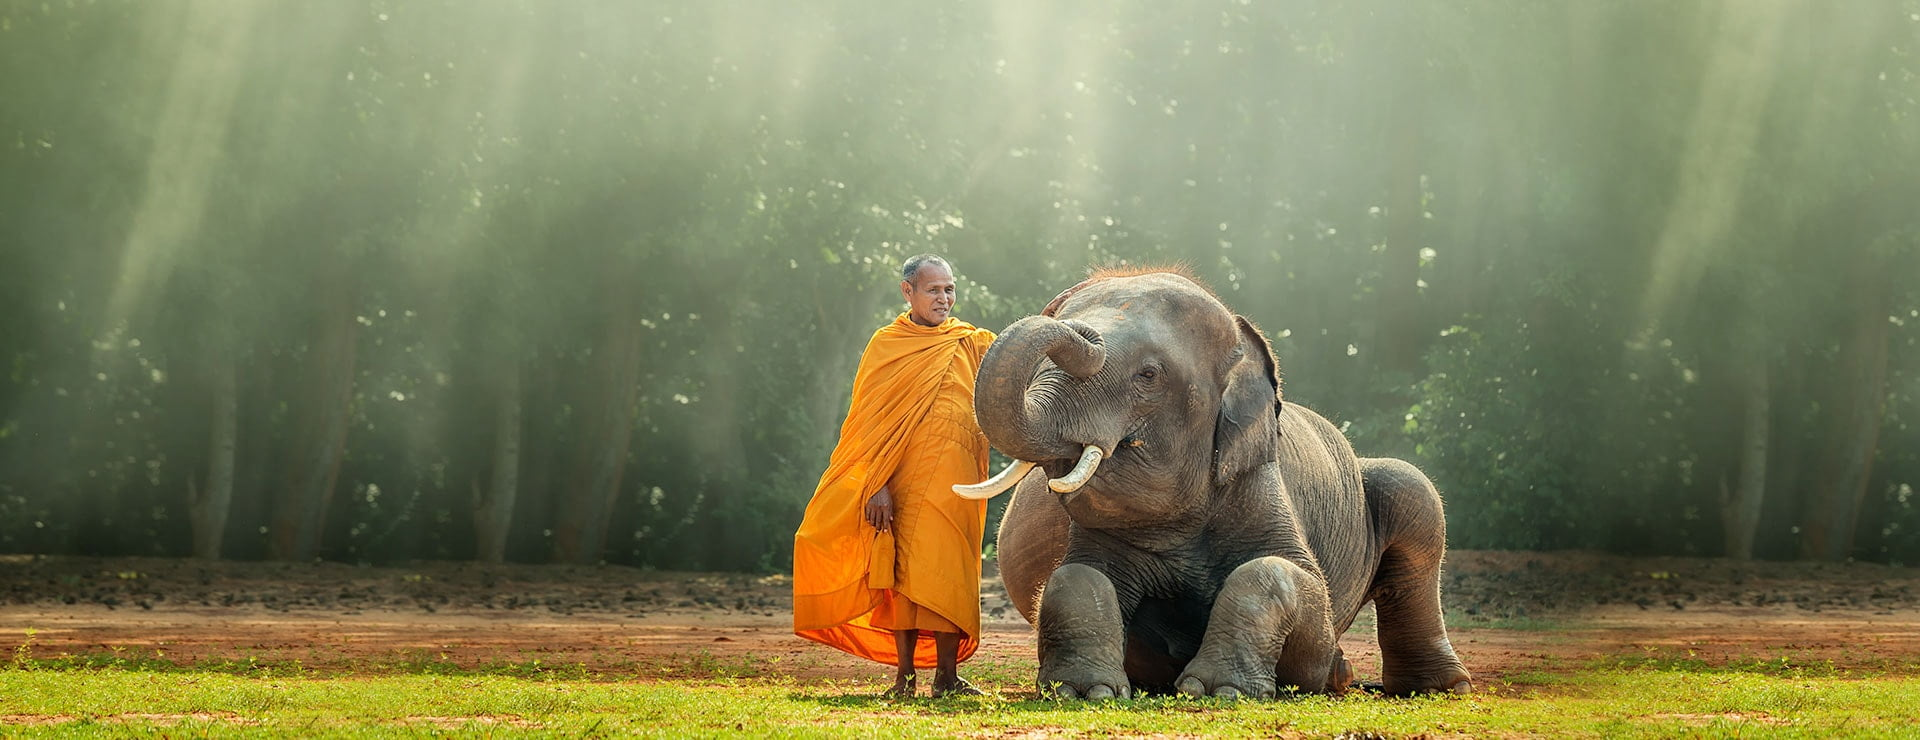 Monk and baby elephant in Cambodia